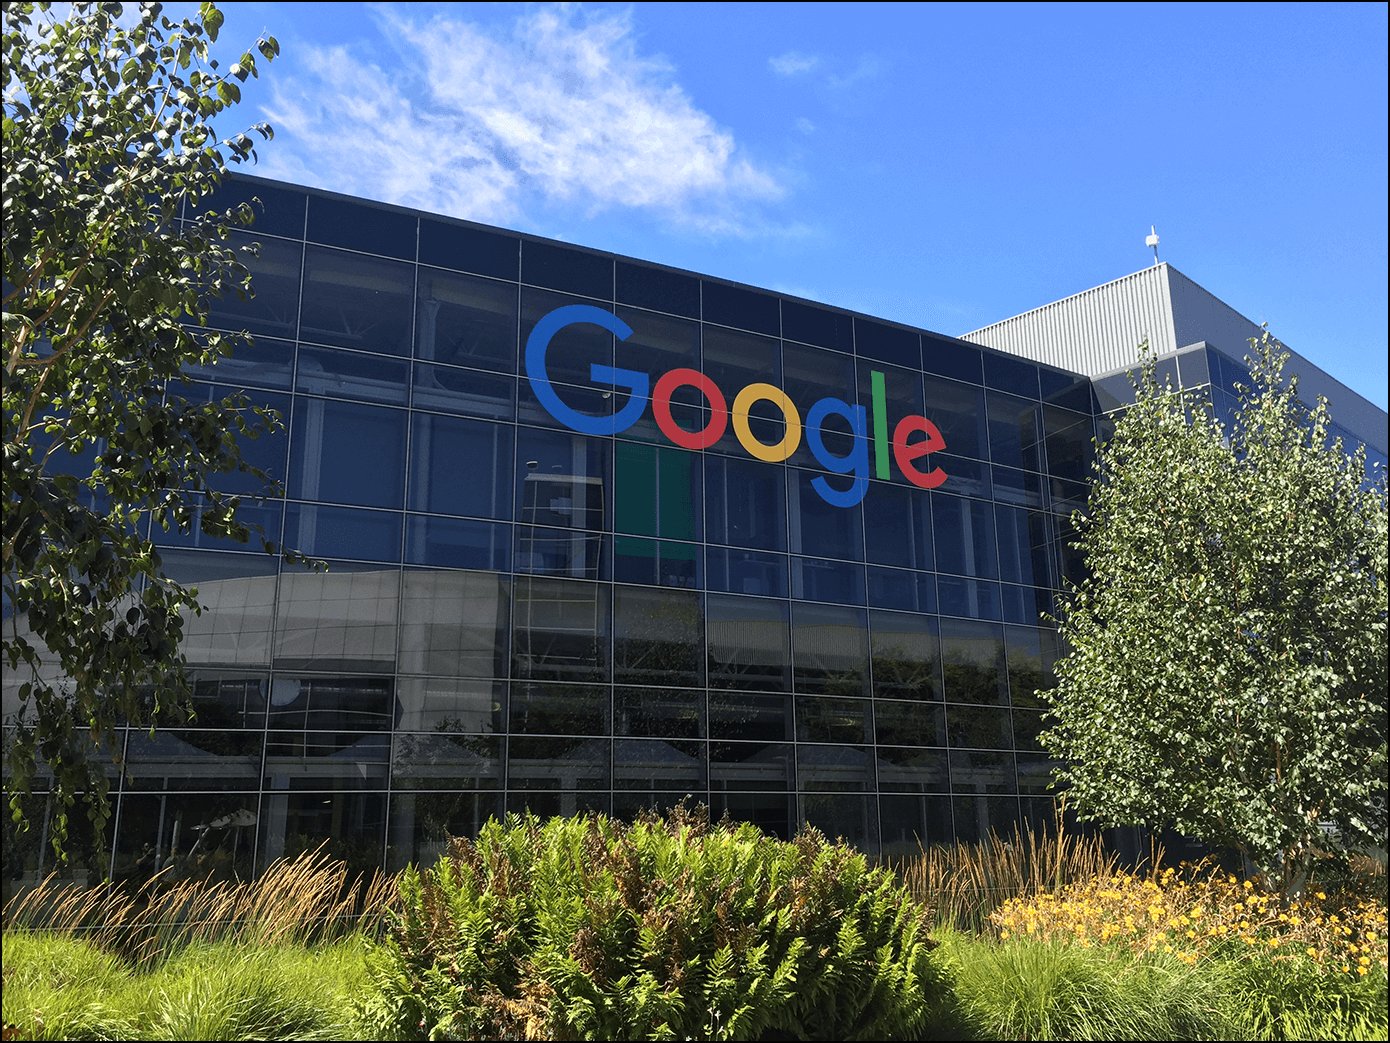 Google Headquarter in Silicon Valley Mountain View